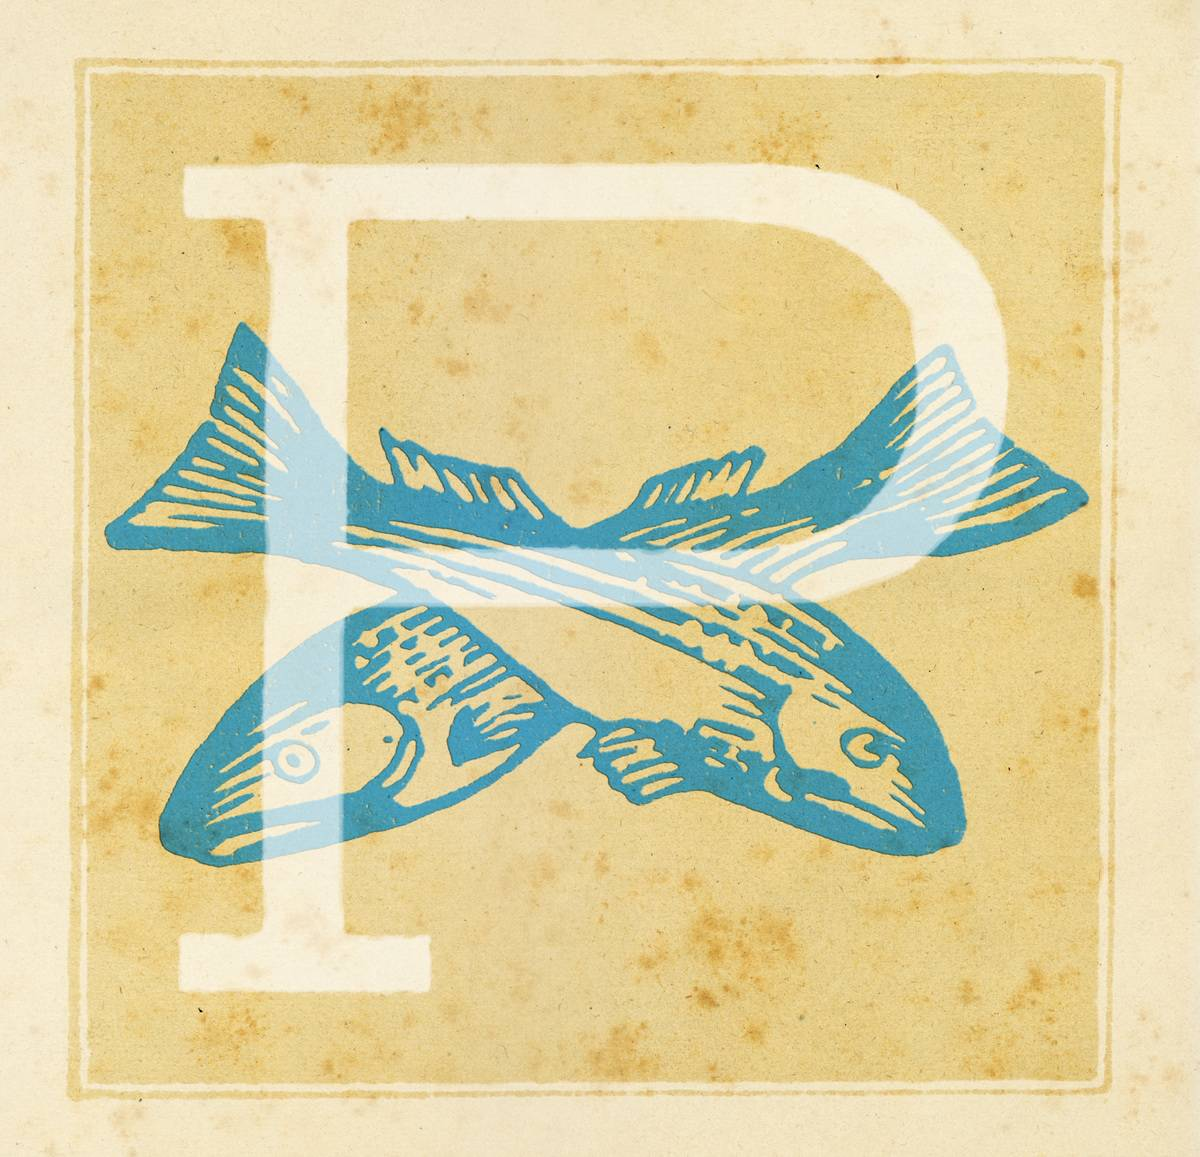 Capital letter P with Zodiacal sign Pisces